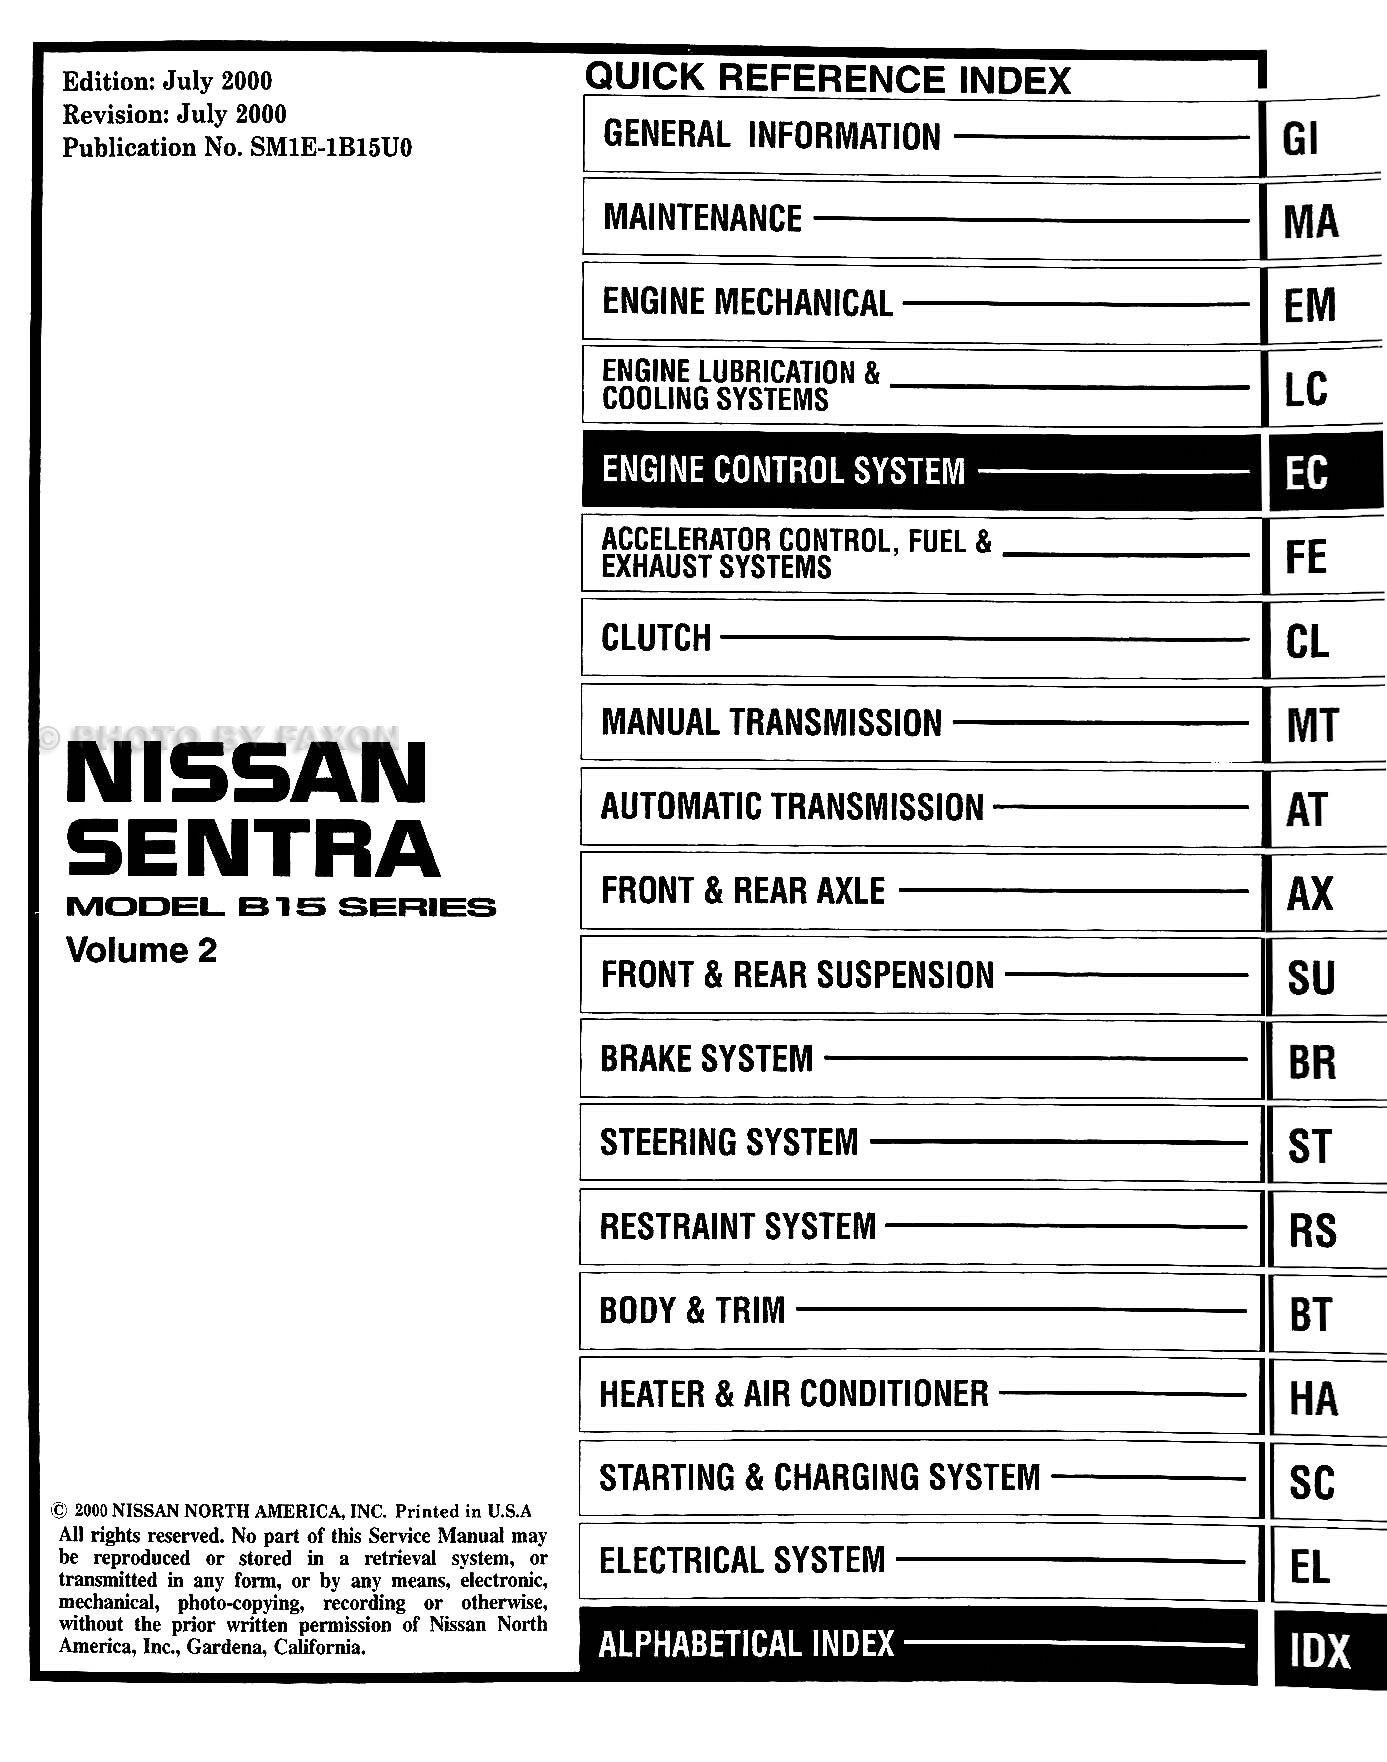 [QMVU_8575]  A7175 02 Sentra Fuse Block Wiring Diagrams | Wiring Library | 02 Sentra Engine Diagram |  | Wiring Library